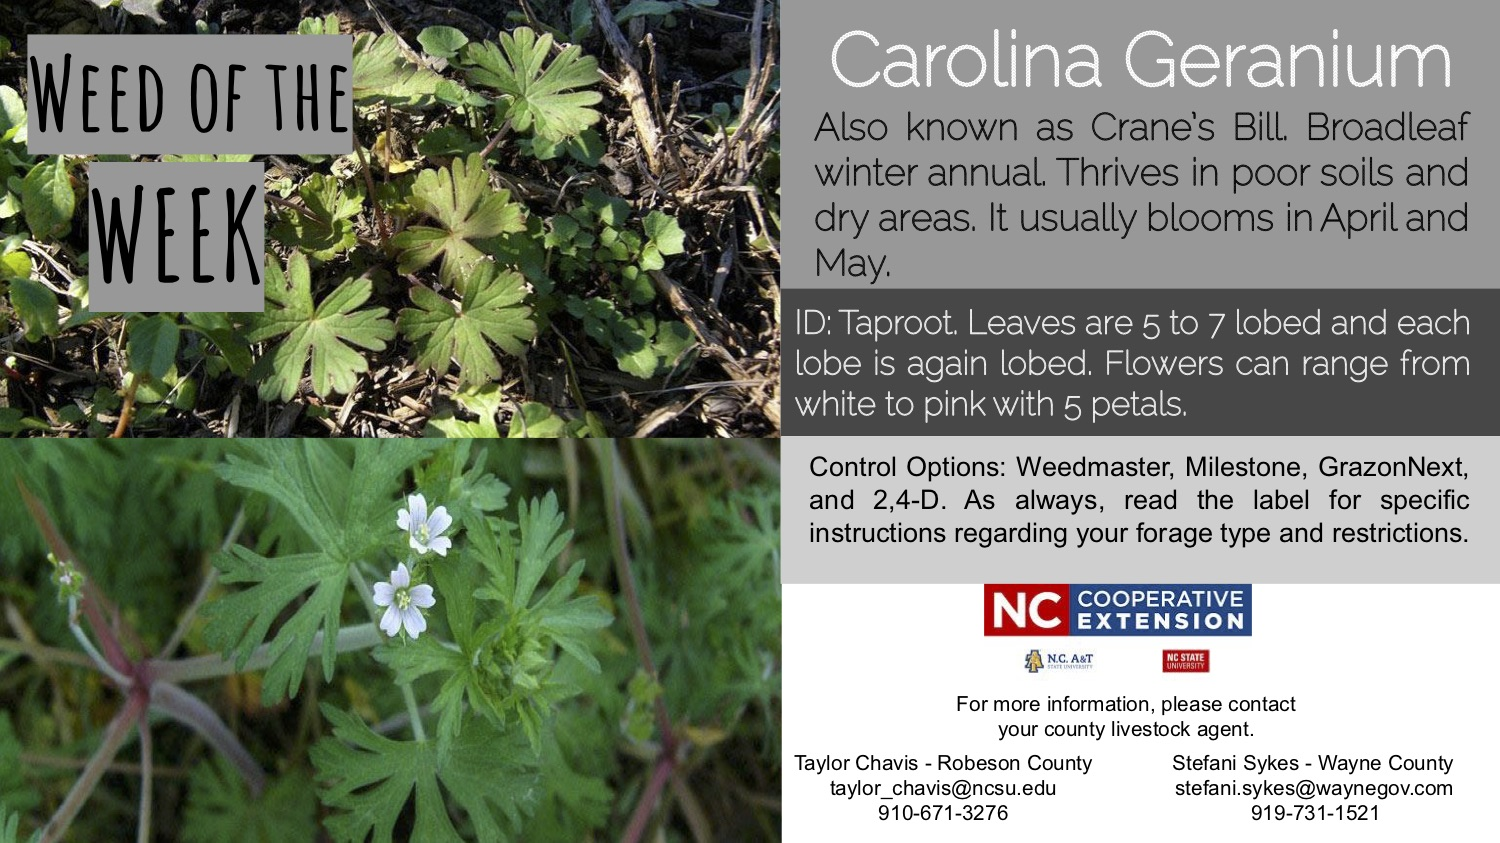 Information on the Carolina Geranium